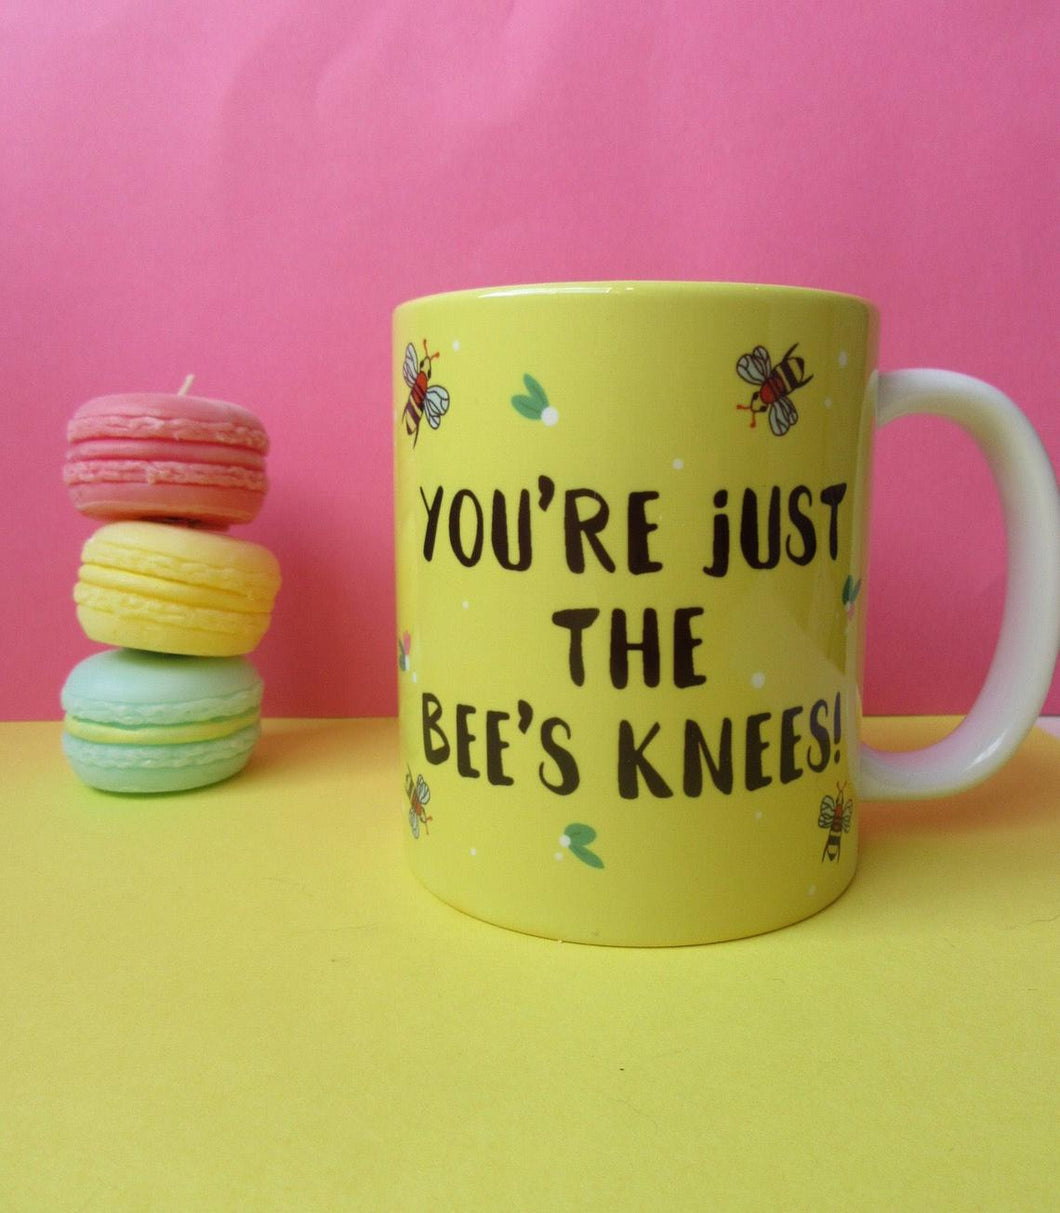 You're Just the Bee's Knees Mug - Thriftbox - motivation - gift ideas